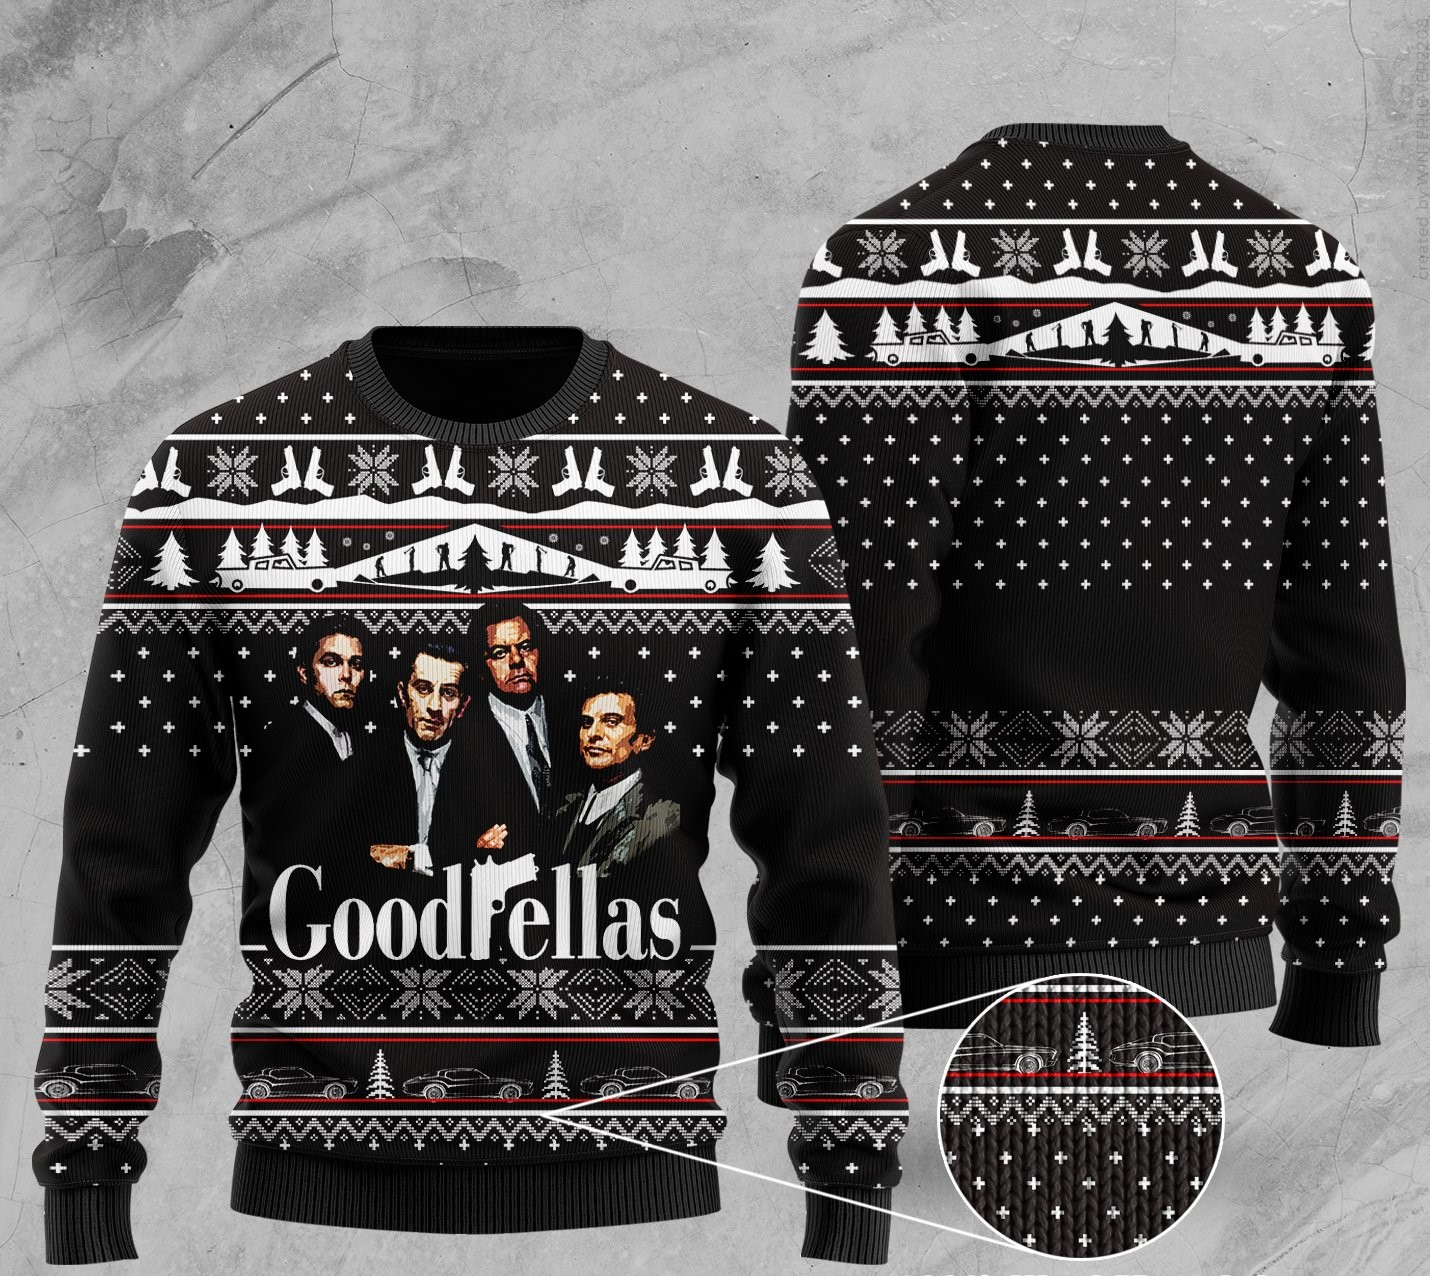 goodfellas all over printed ugly christmas sweater 2 - Copy (2)